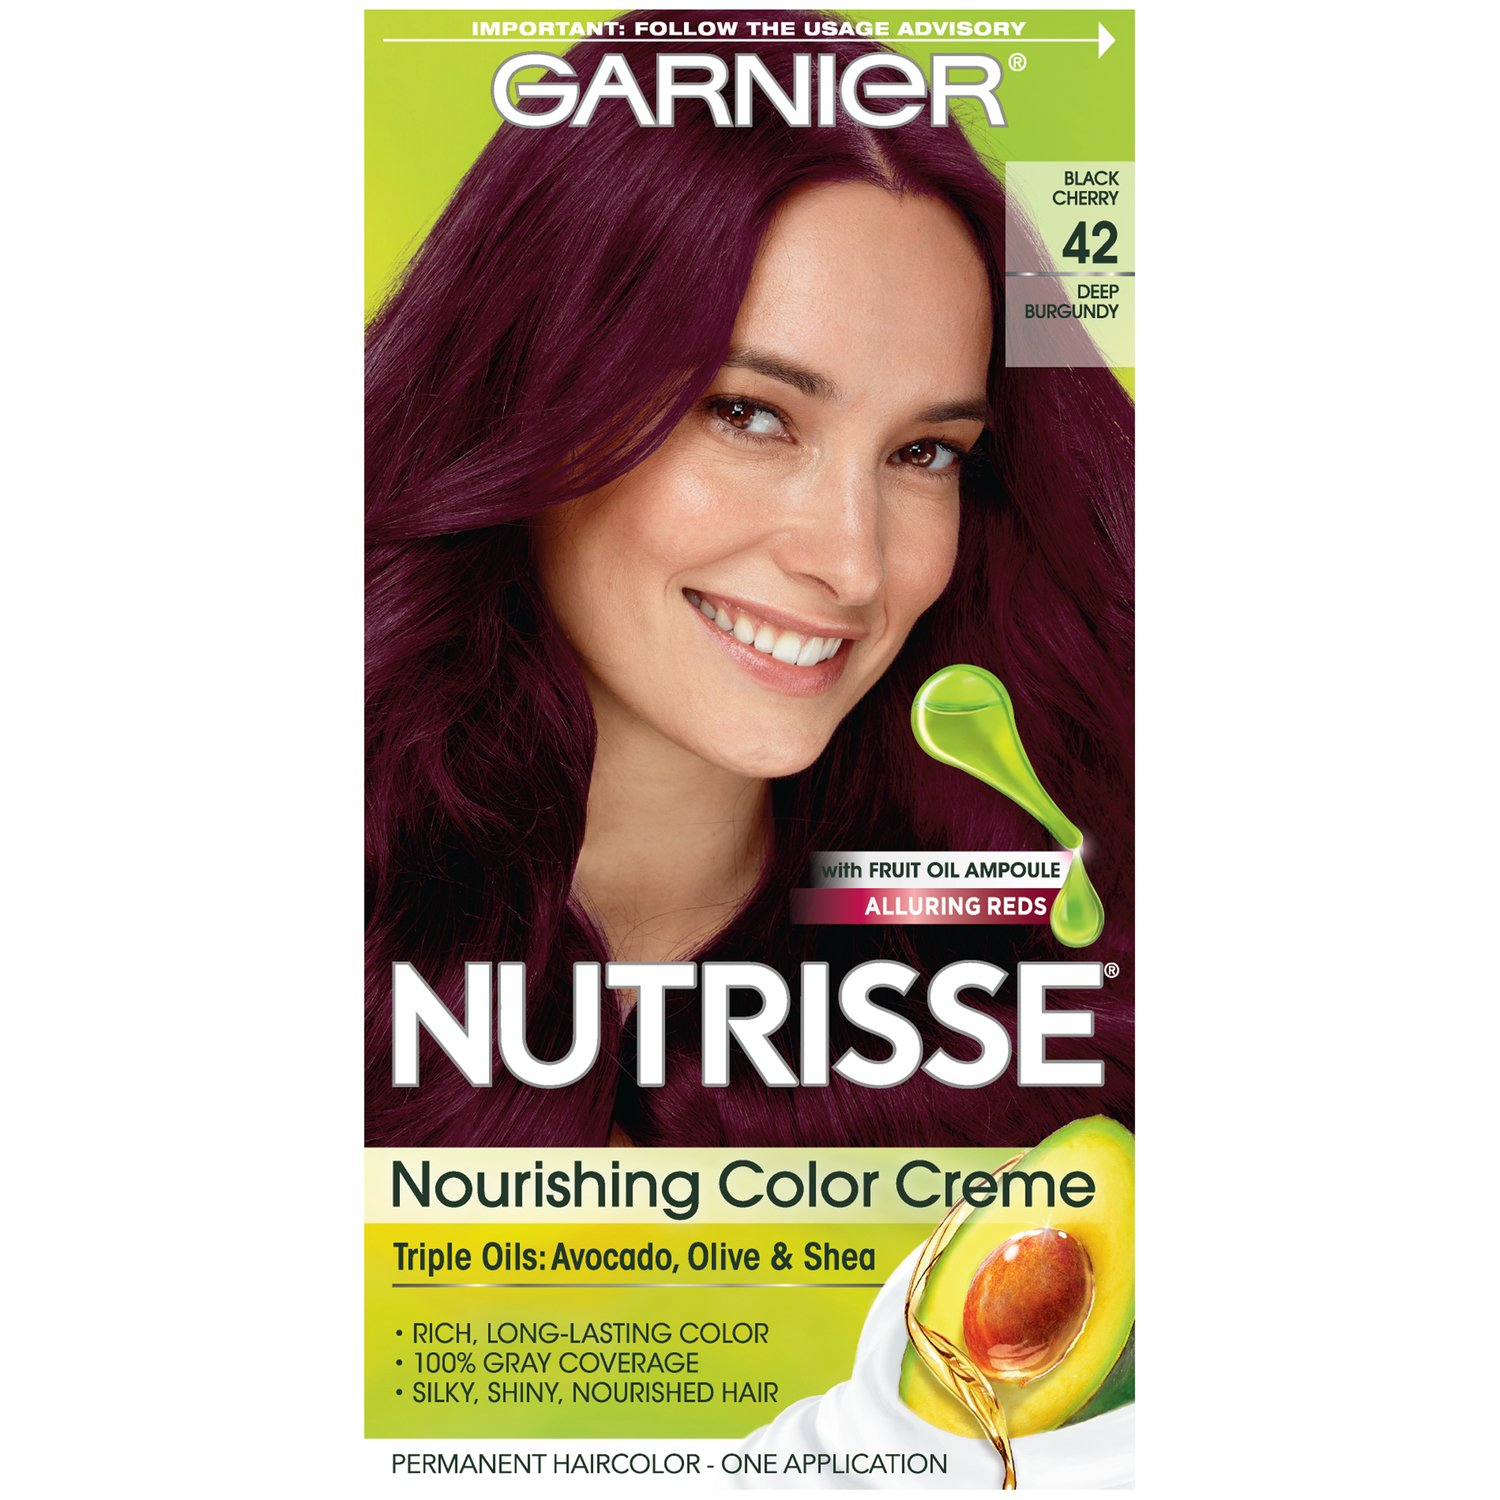 Amazon Garnier Nutrisse Nourishing Hair Color Creme 42 Deep